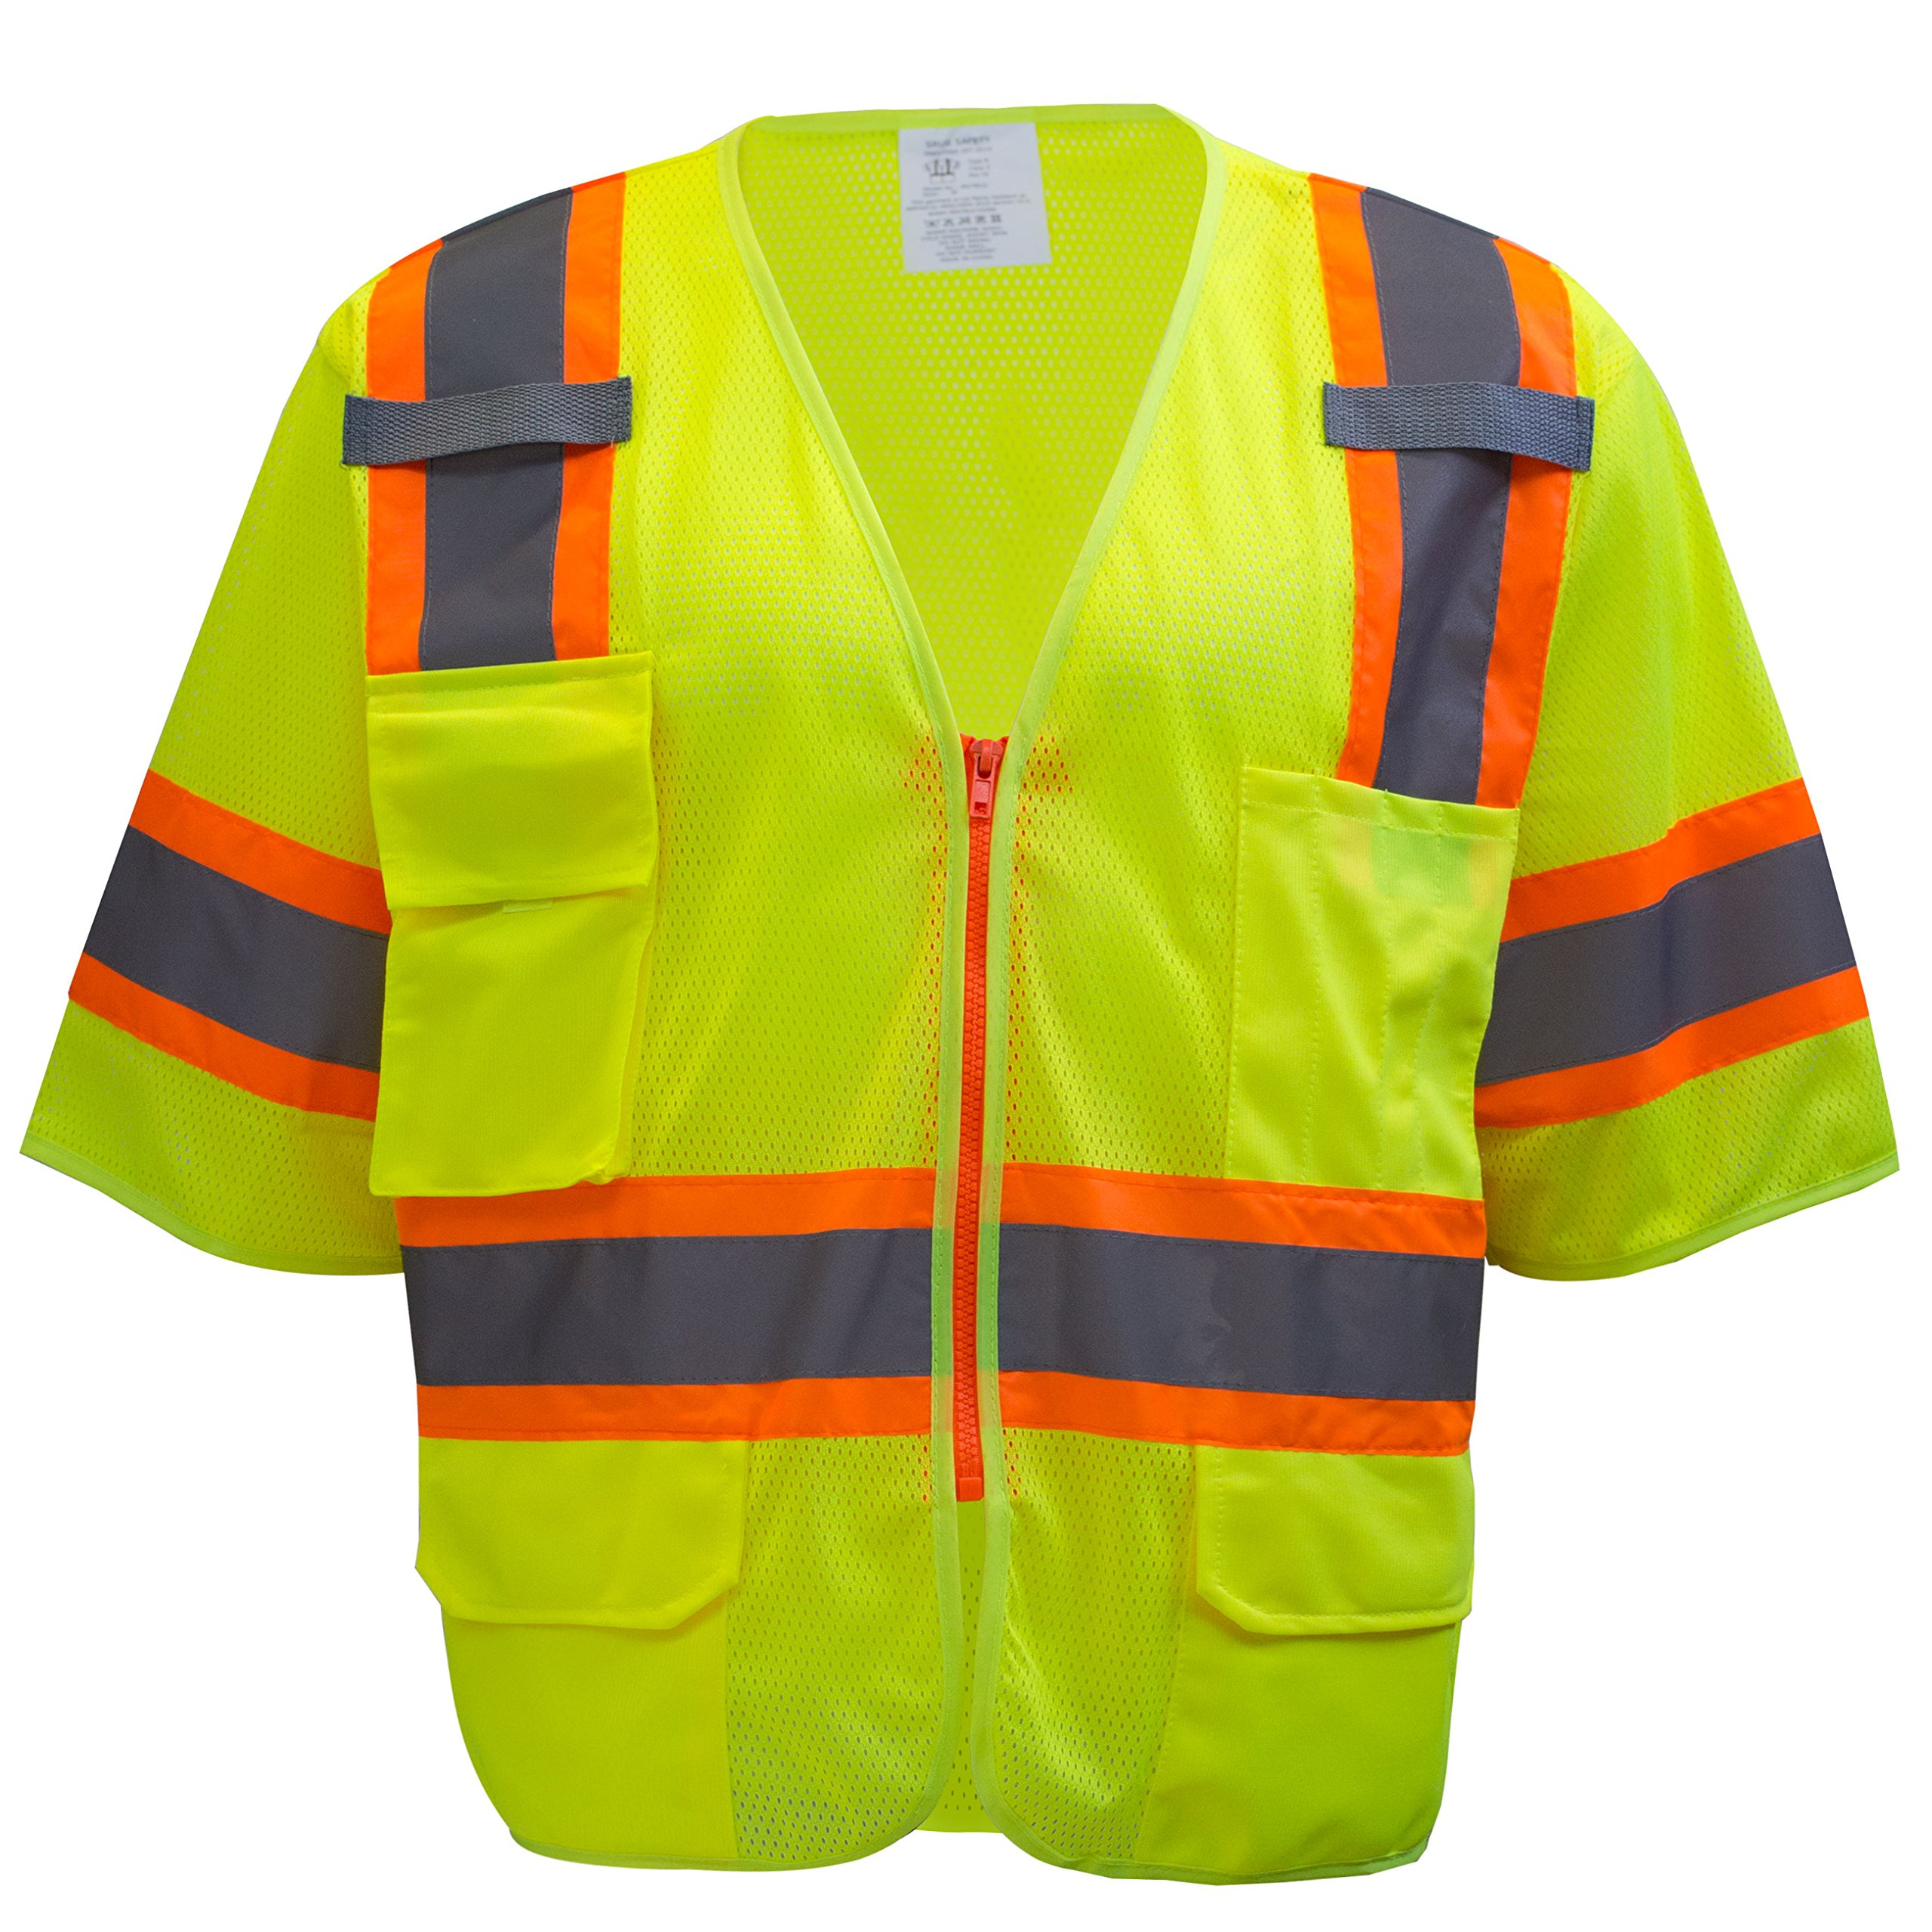 RK-Safety MV7812 Class 3 Two Tones High Visibility Reflective Strips Breathable Ployester Mesh Vest W/Pockets | ANSI ISEA 107-2015 Certified (Large, Lime)